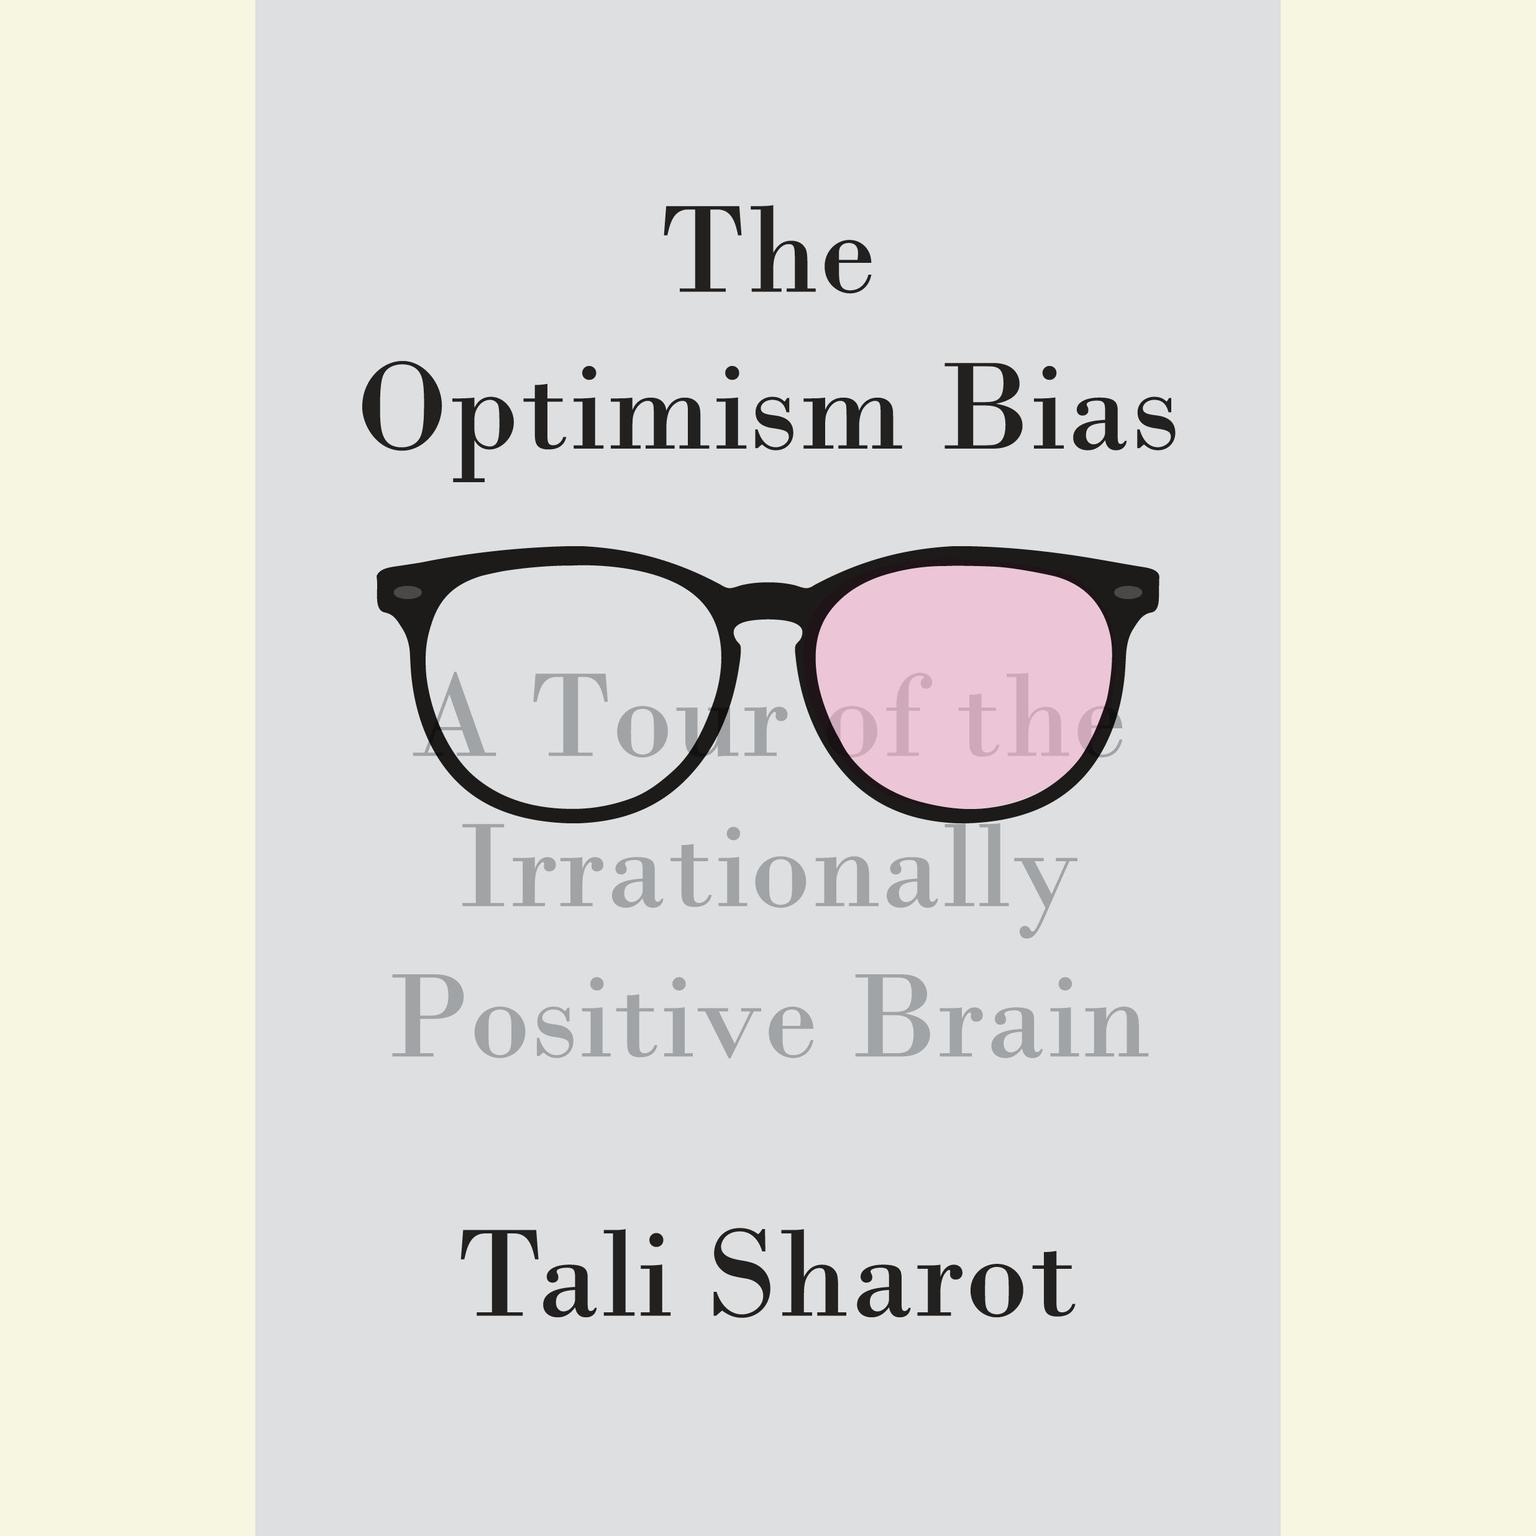 Printable The Optimism Bias: A Tour of the Irrationally Positive Brain Audiobook Cover Art